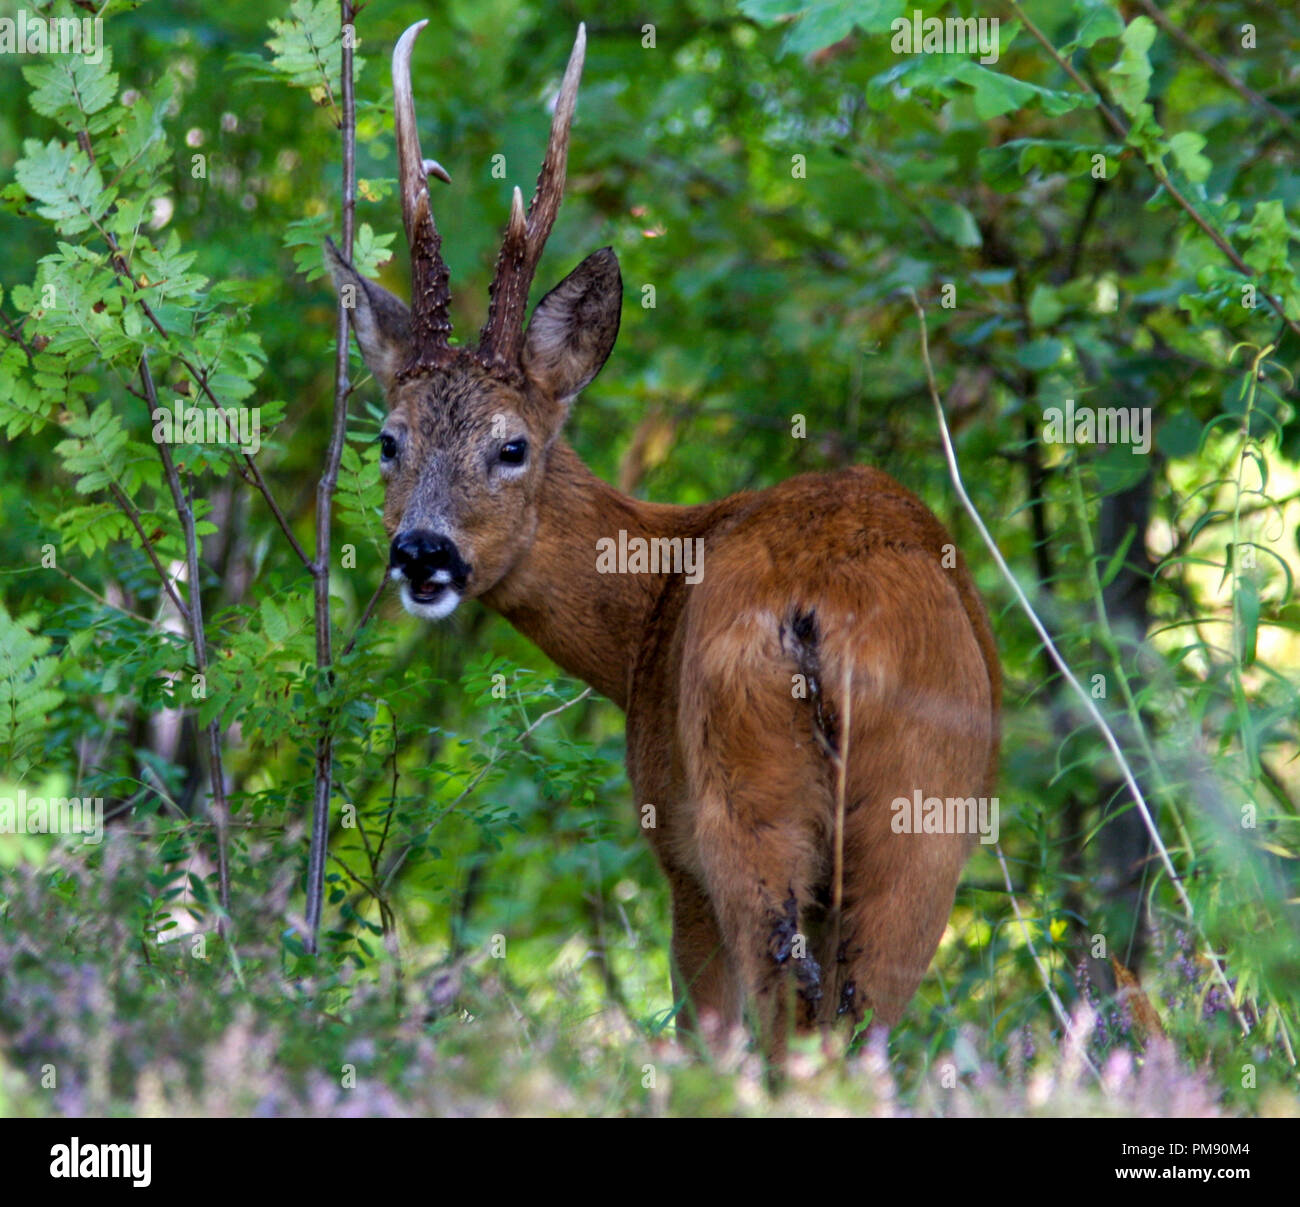 ROEBUCK grazing in scrub 2015 - Stock Image